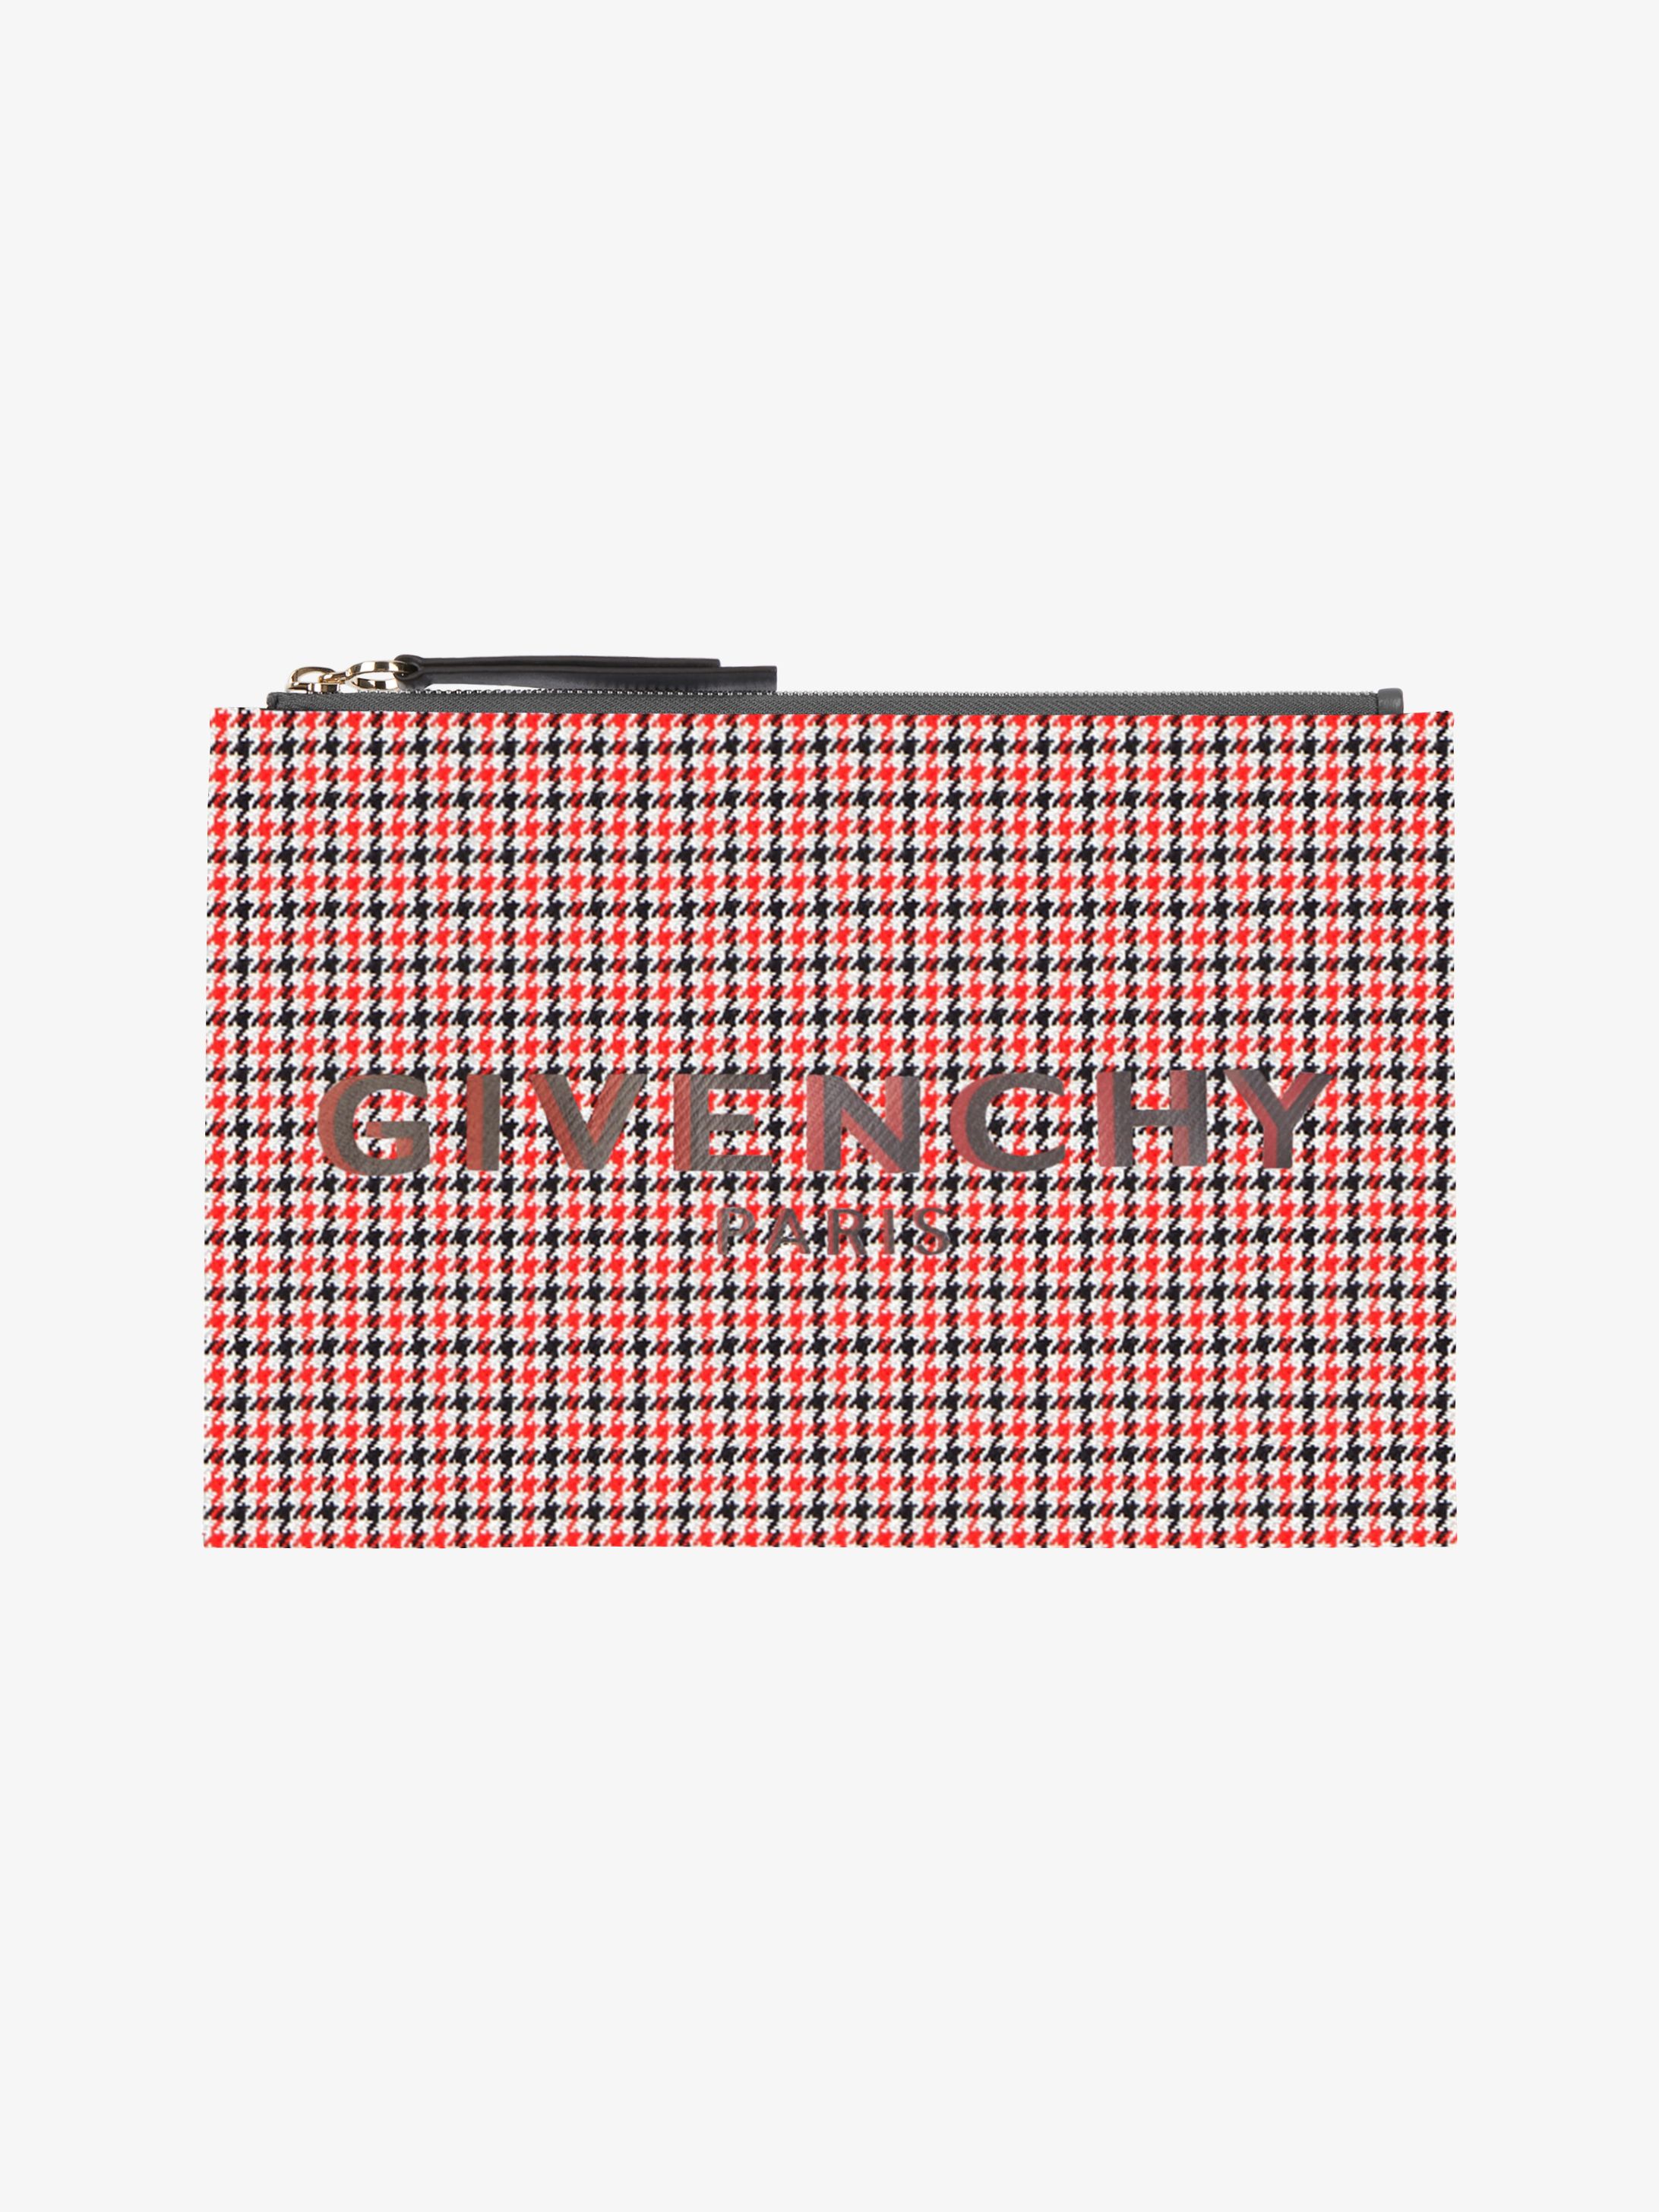 GIVENCHY PARIS medium pouch in houndstooth